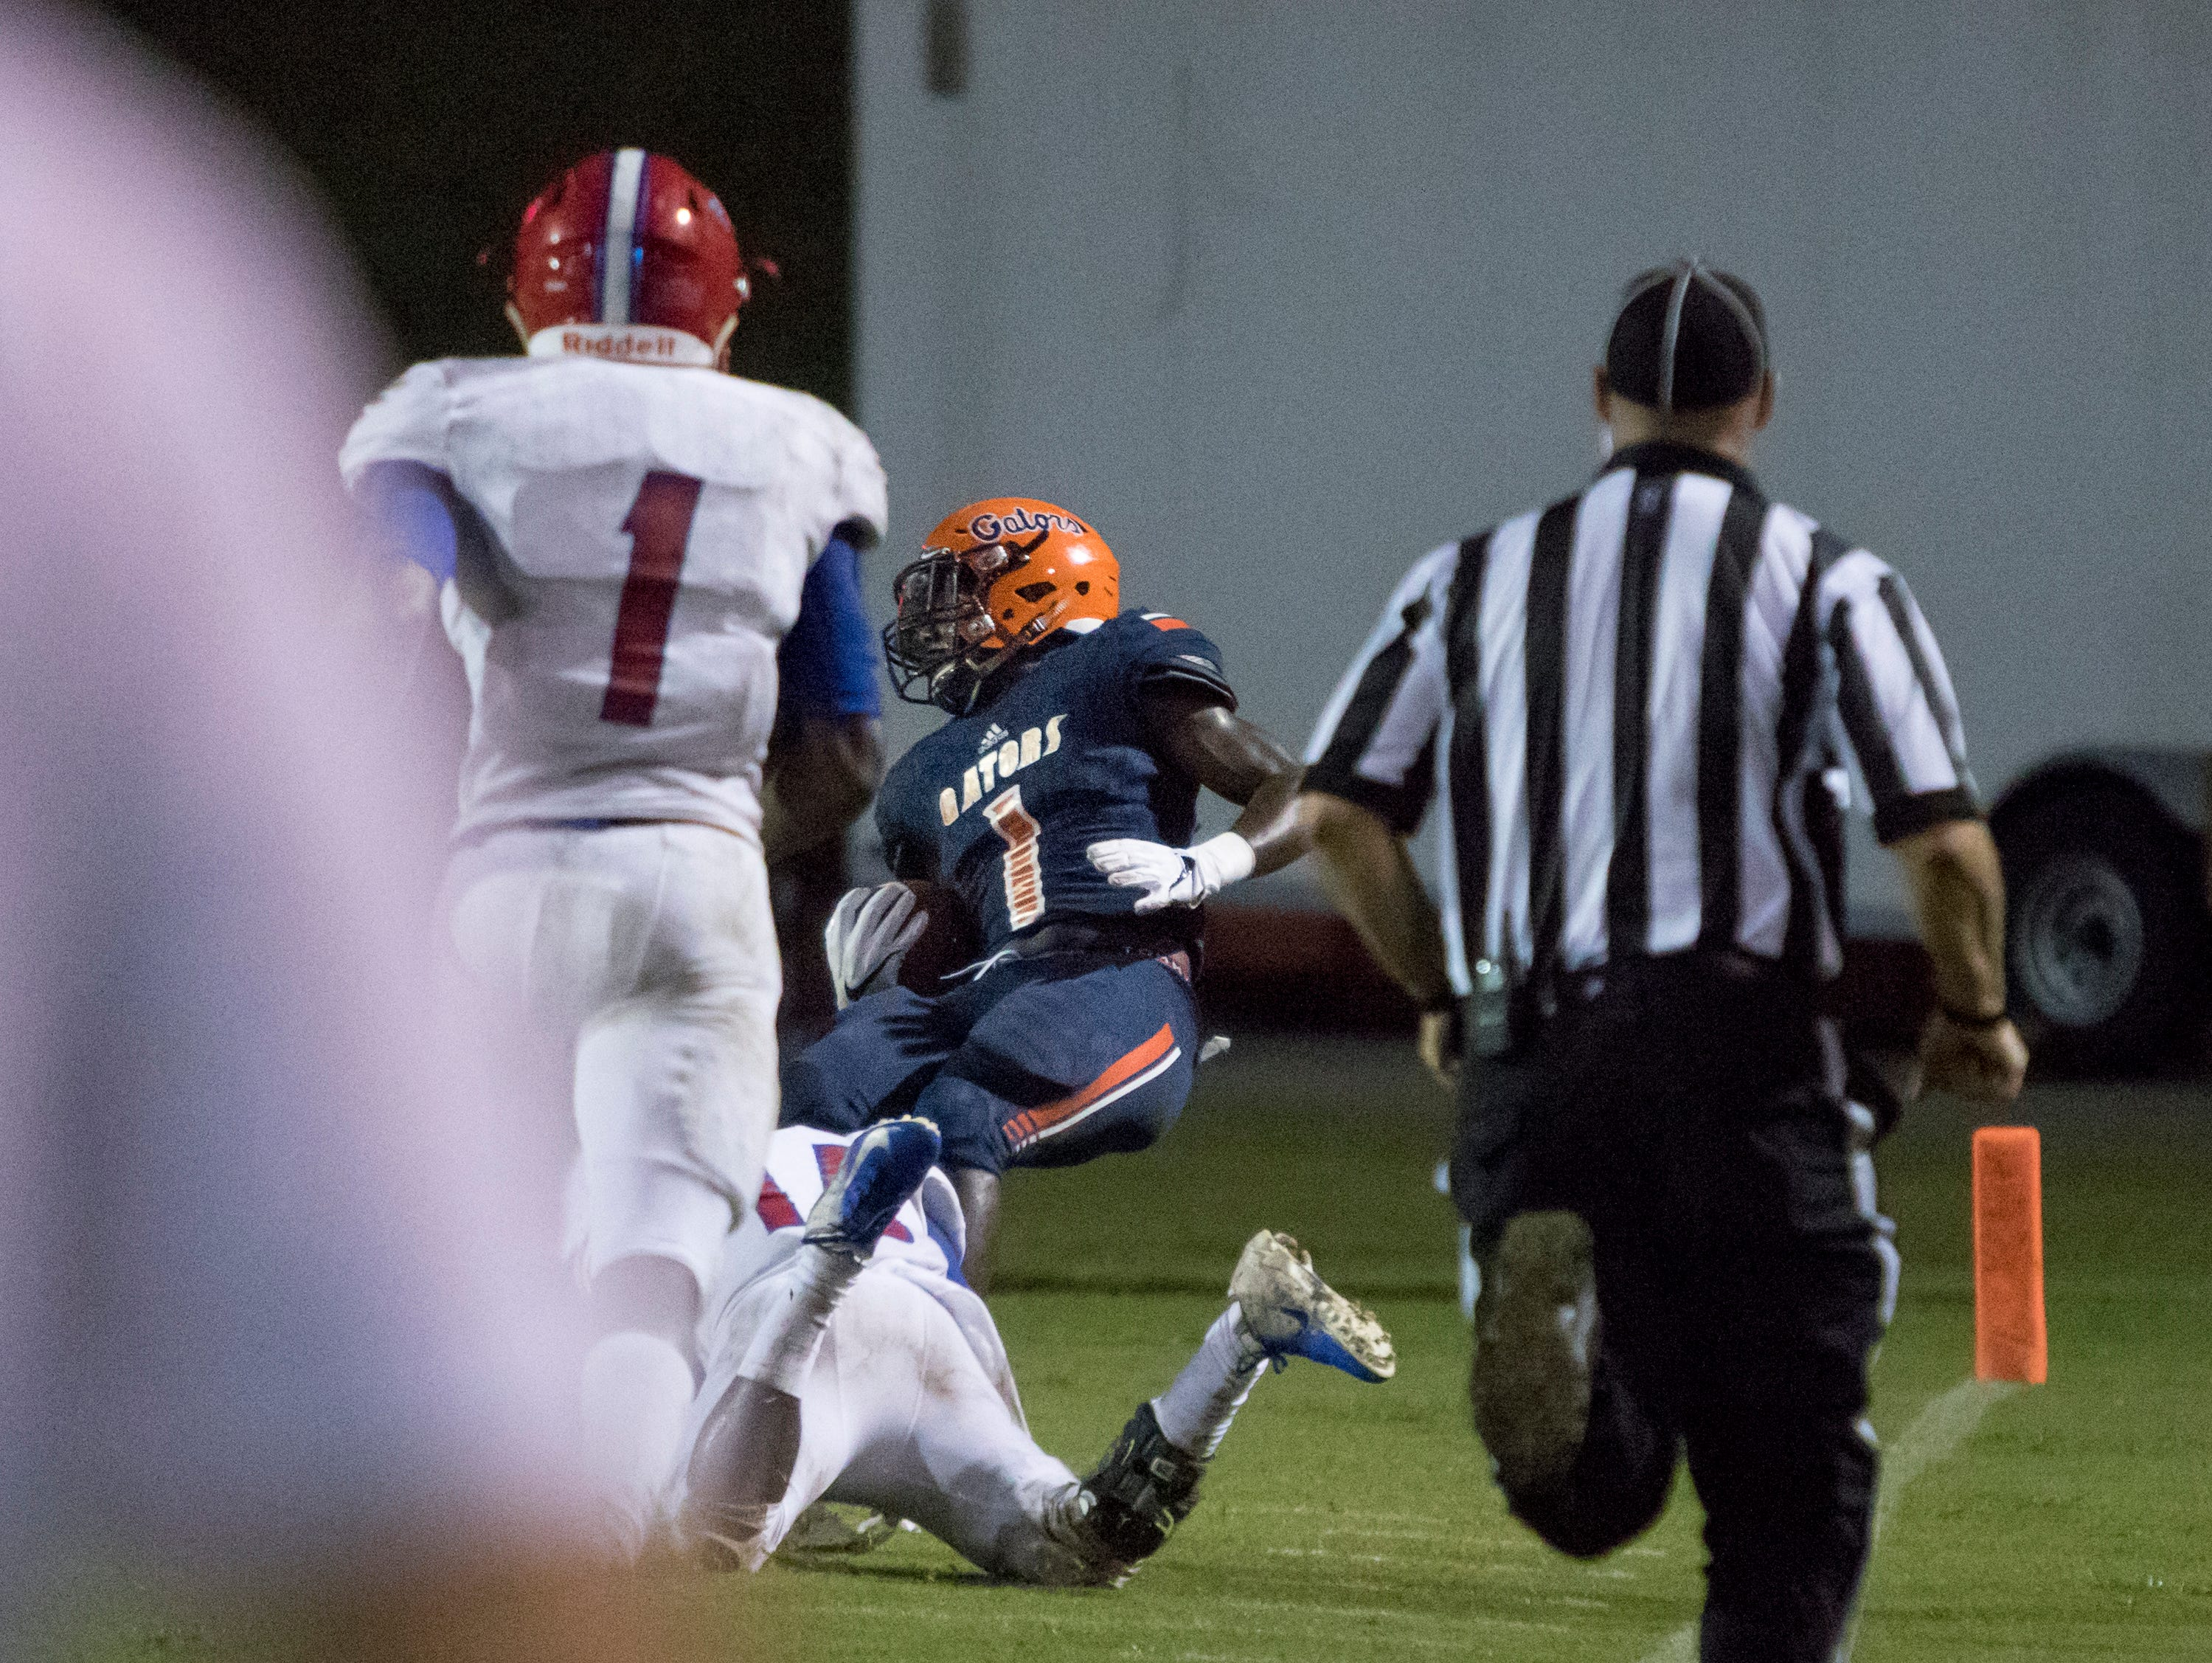 Frank Peasent (1) is stopped just short of the goal line after a big run during the Pine Forest vs Escambia football game at Escambia High School in Pensacola on Friday, September 28, 2018.